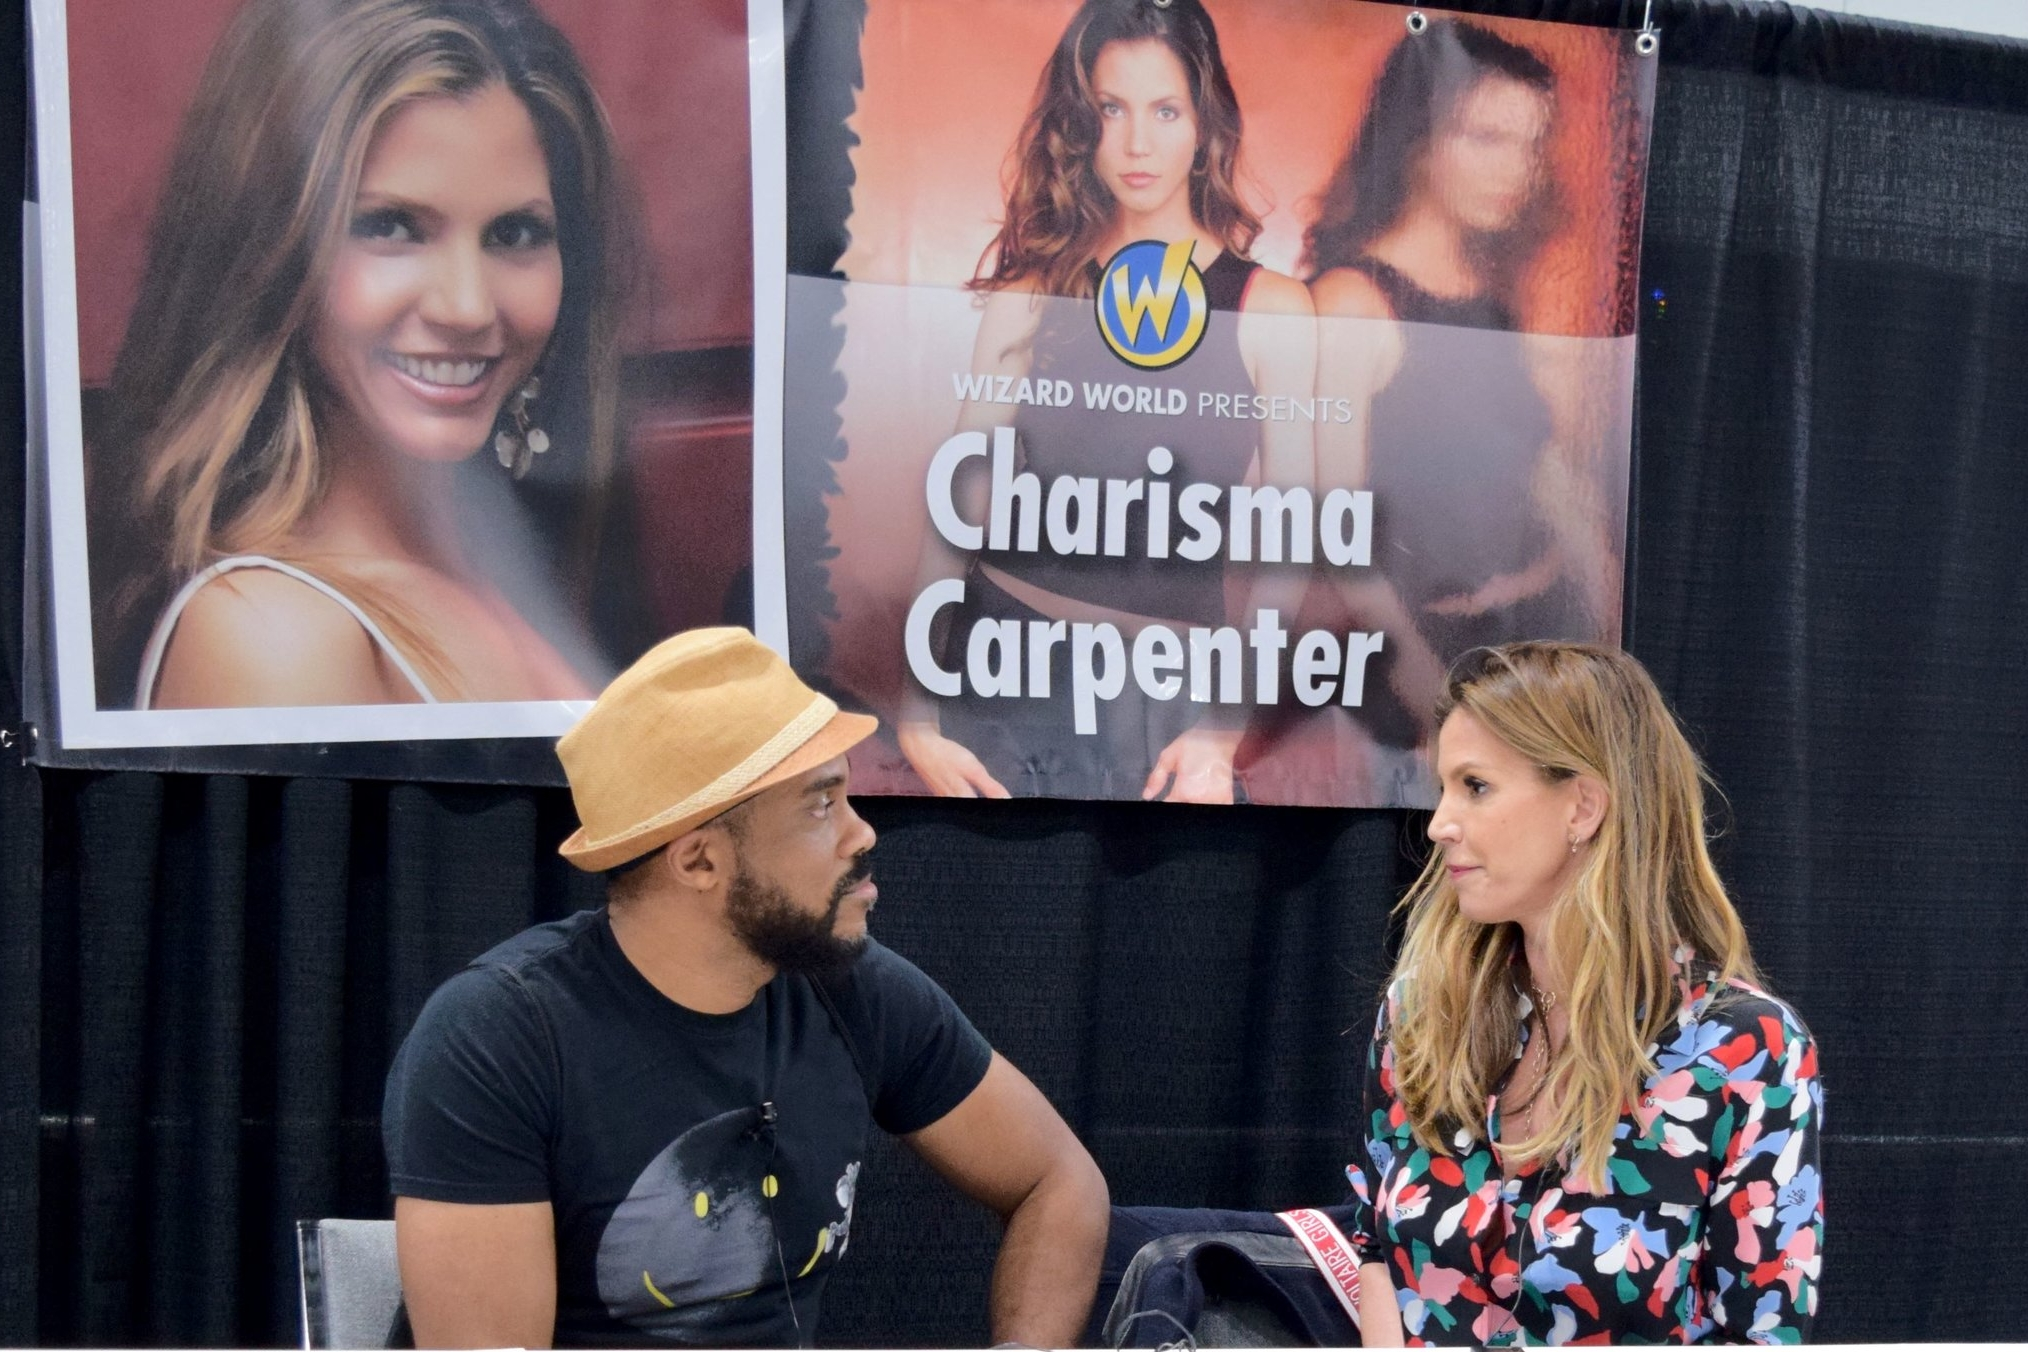 A Stake Through the Art - An Interview With Charisma Carpenter (Wizard World Des Moines 2018)   Written by R. Alan Brooks